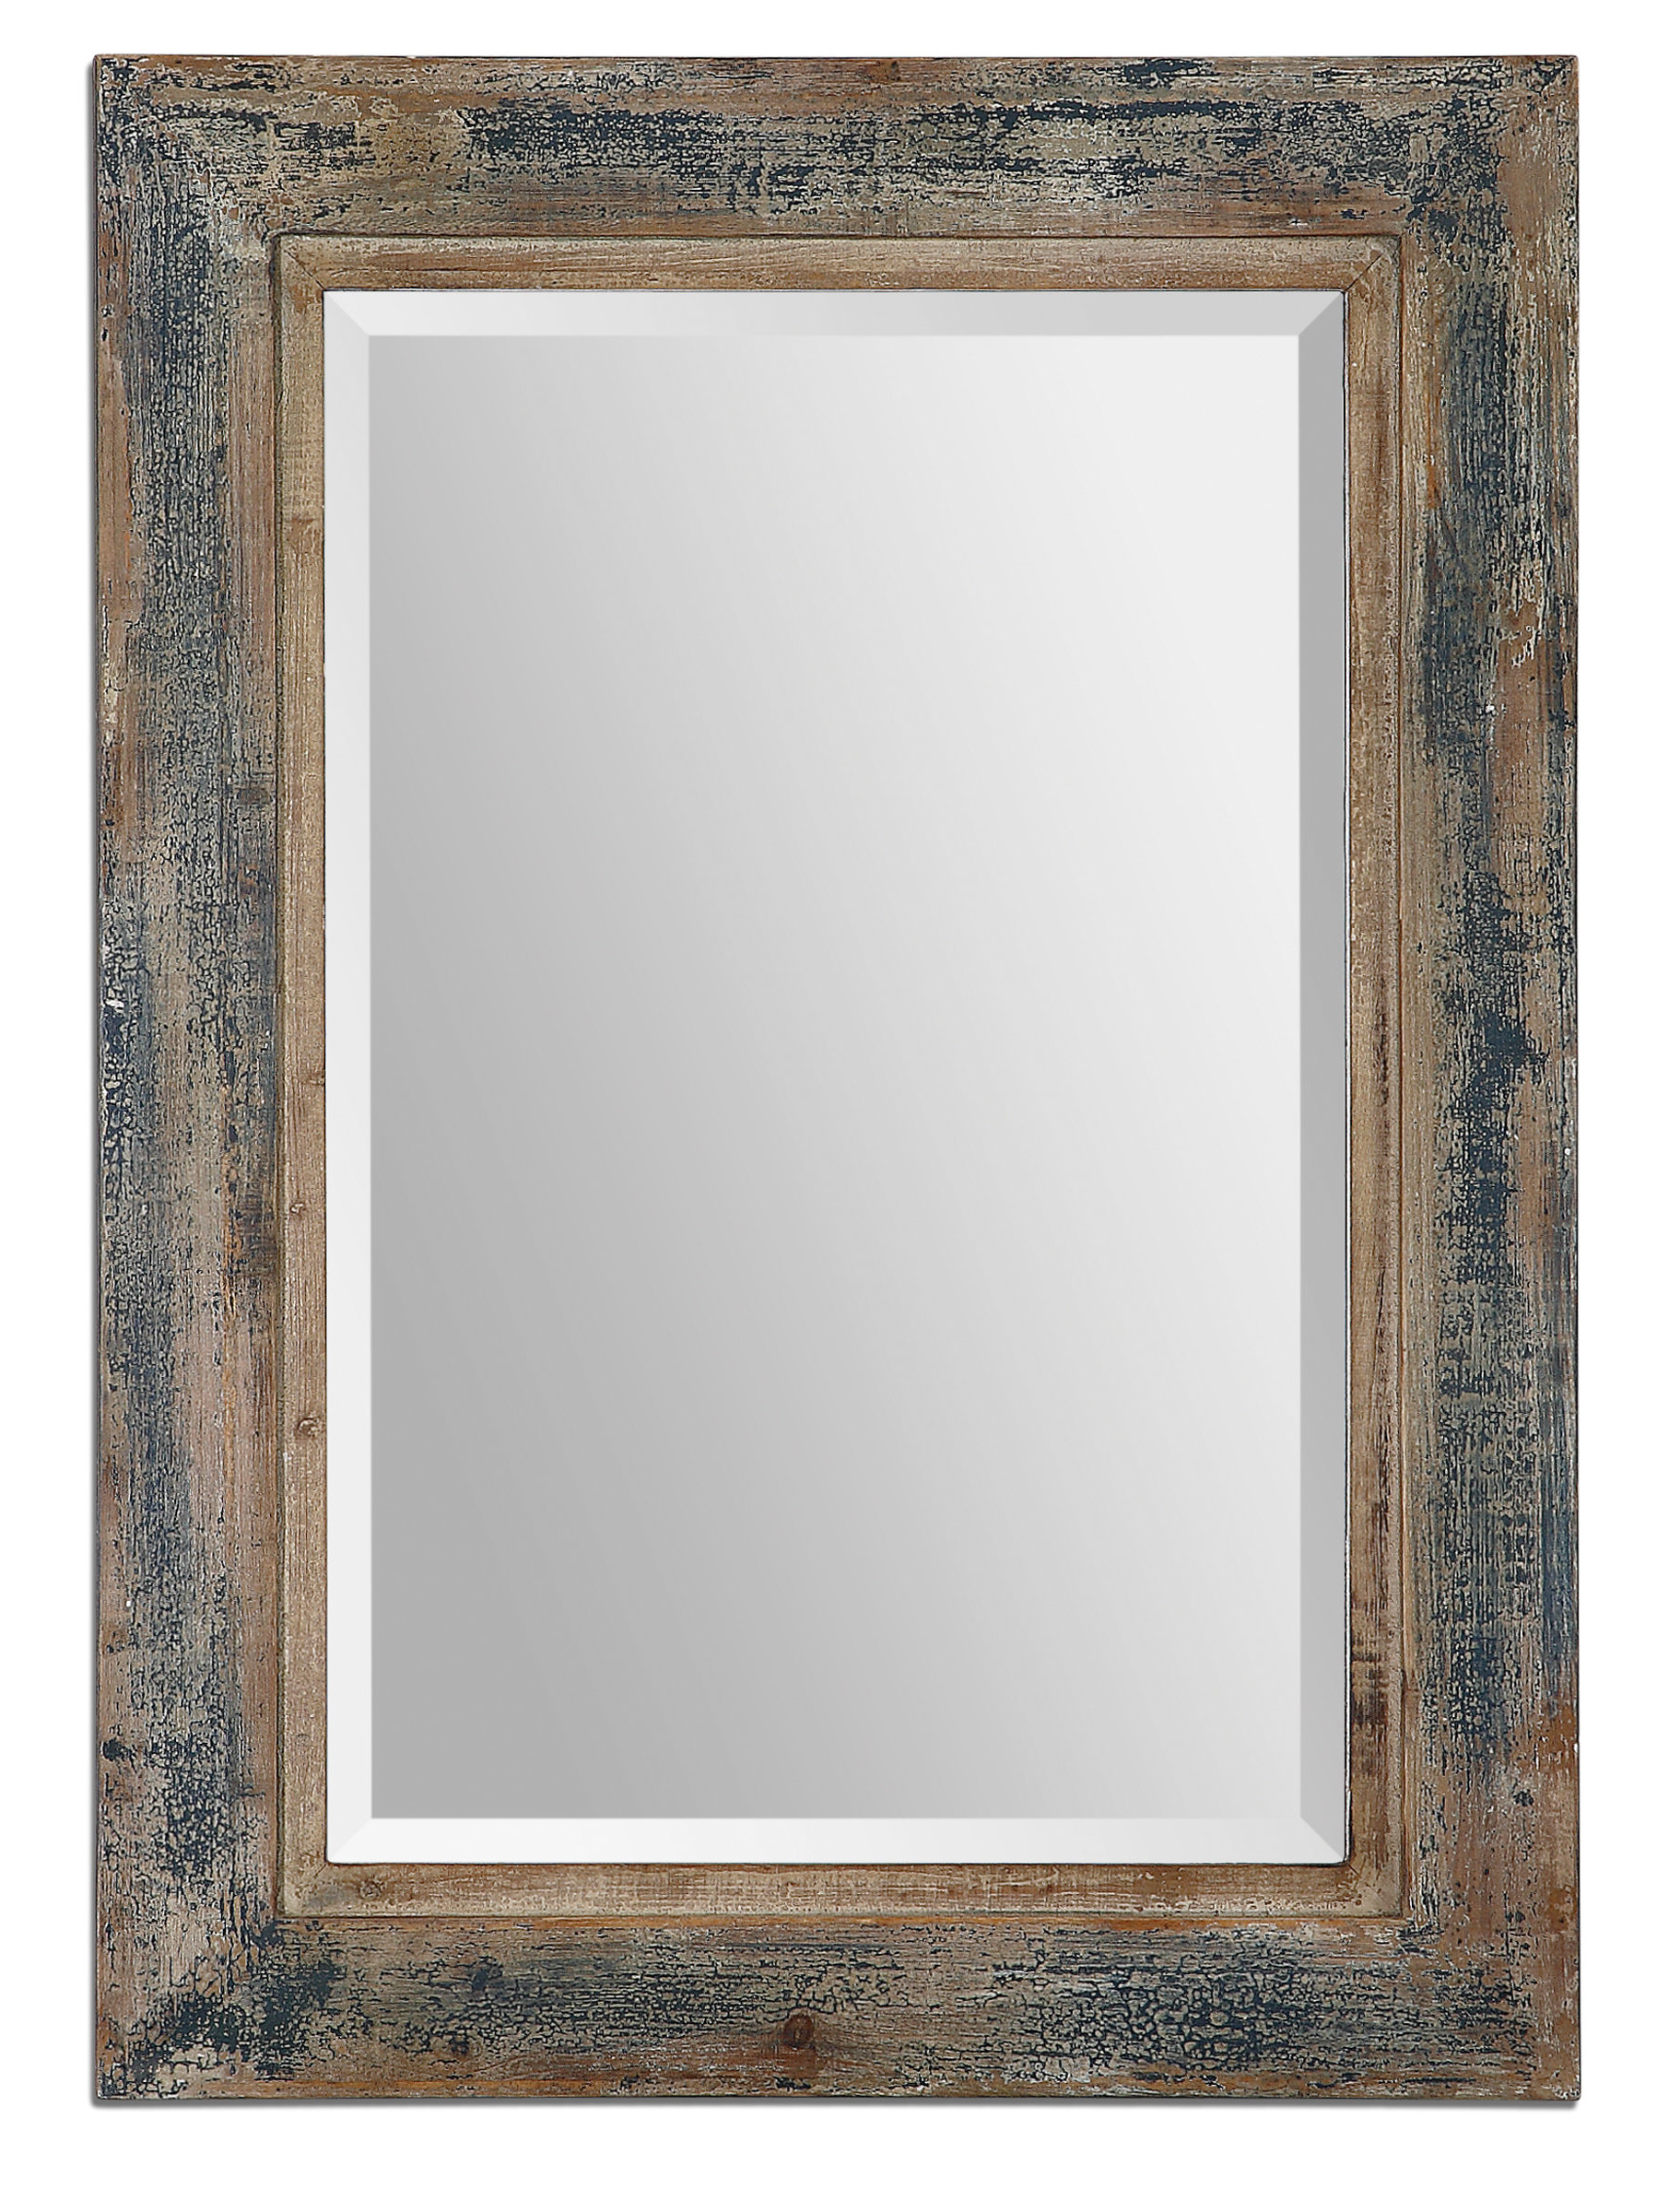 Landover Rustic Distressed Bathroom/vanity Mirrors Within Well Known Modern & Contemporary Framed Bathroom Mirrors (View 9 of 20)